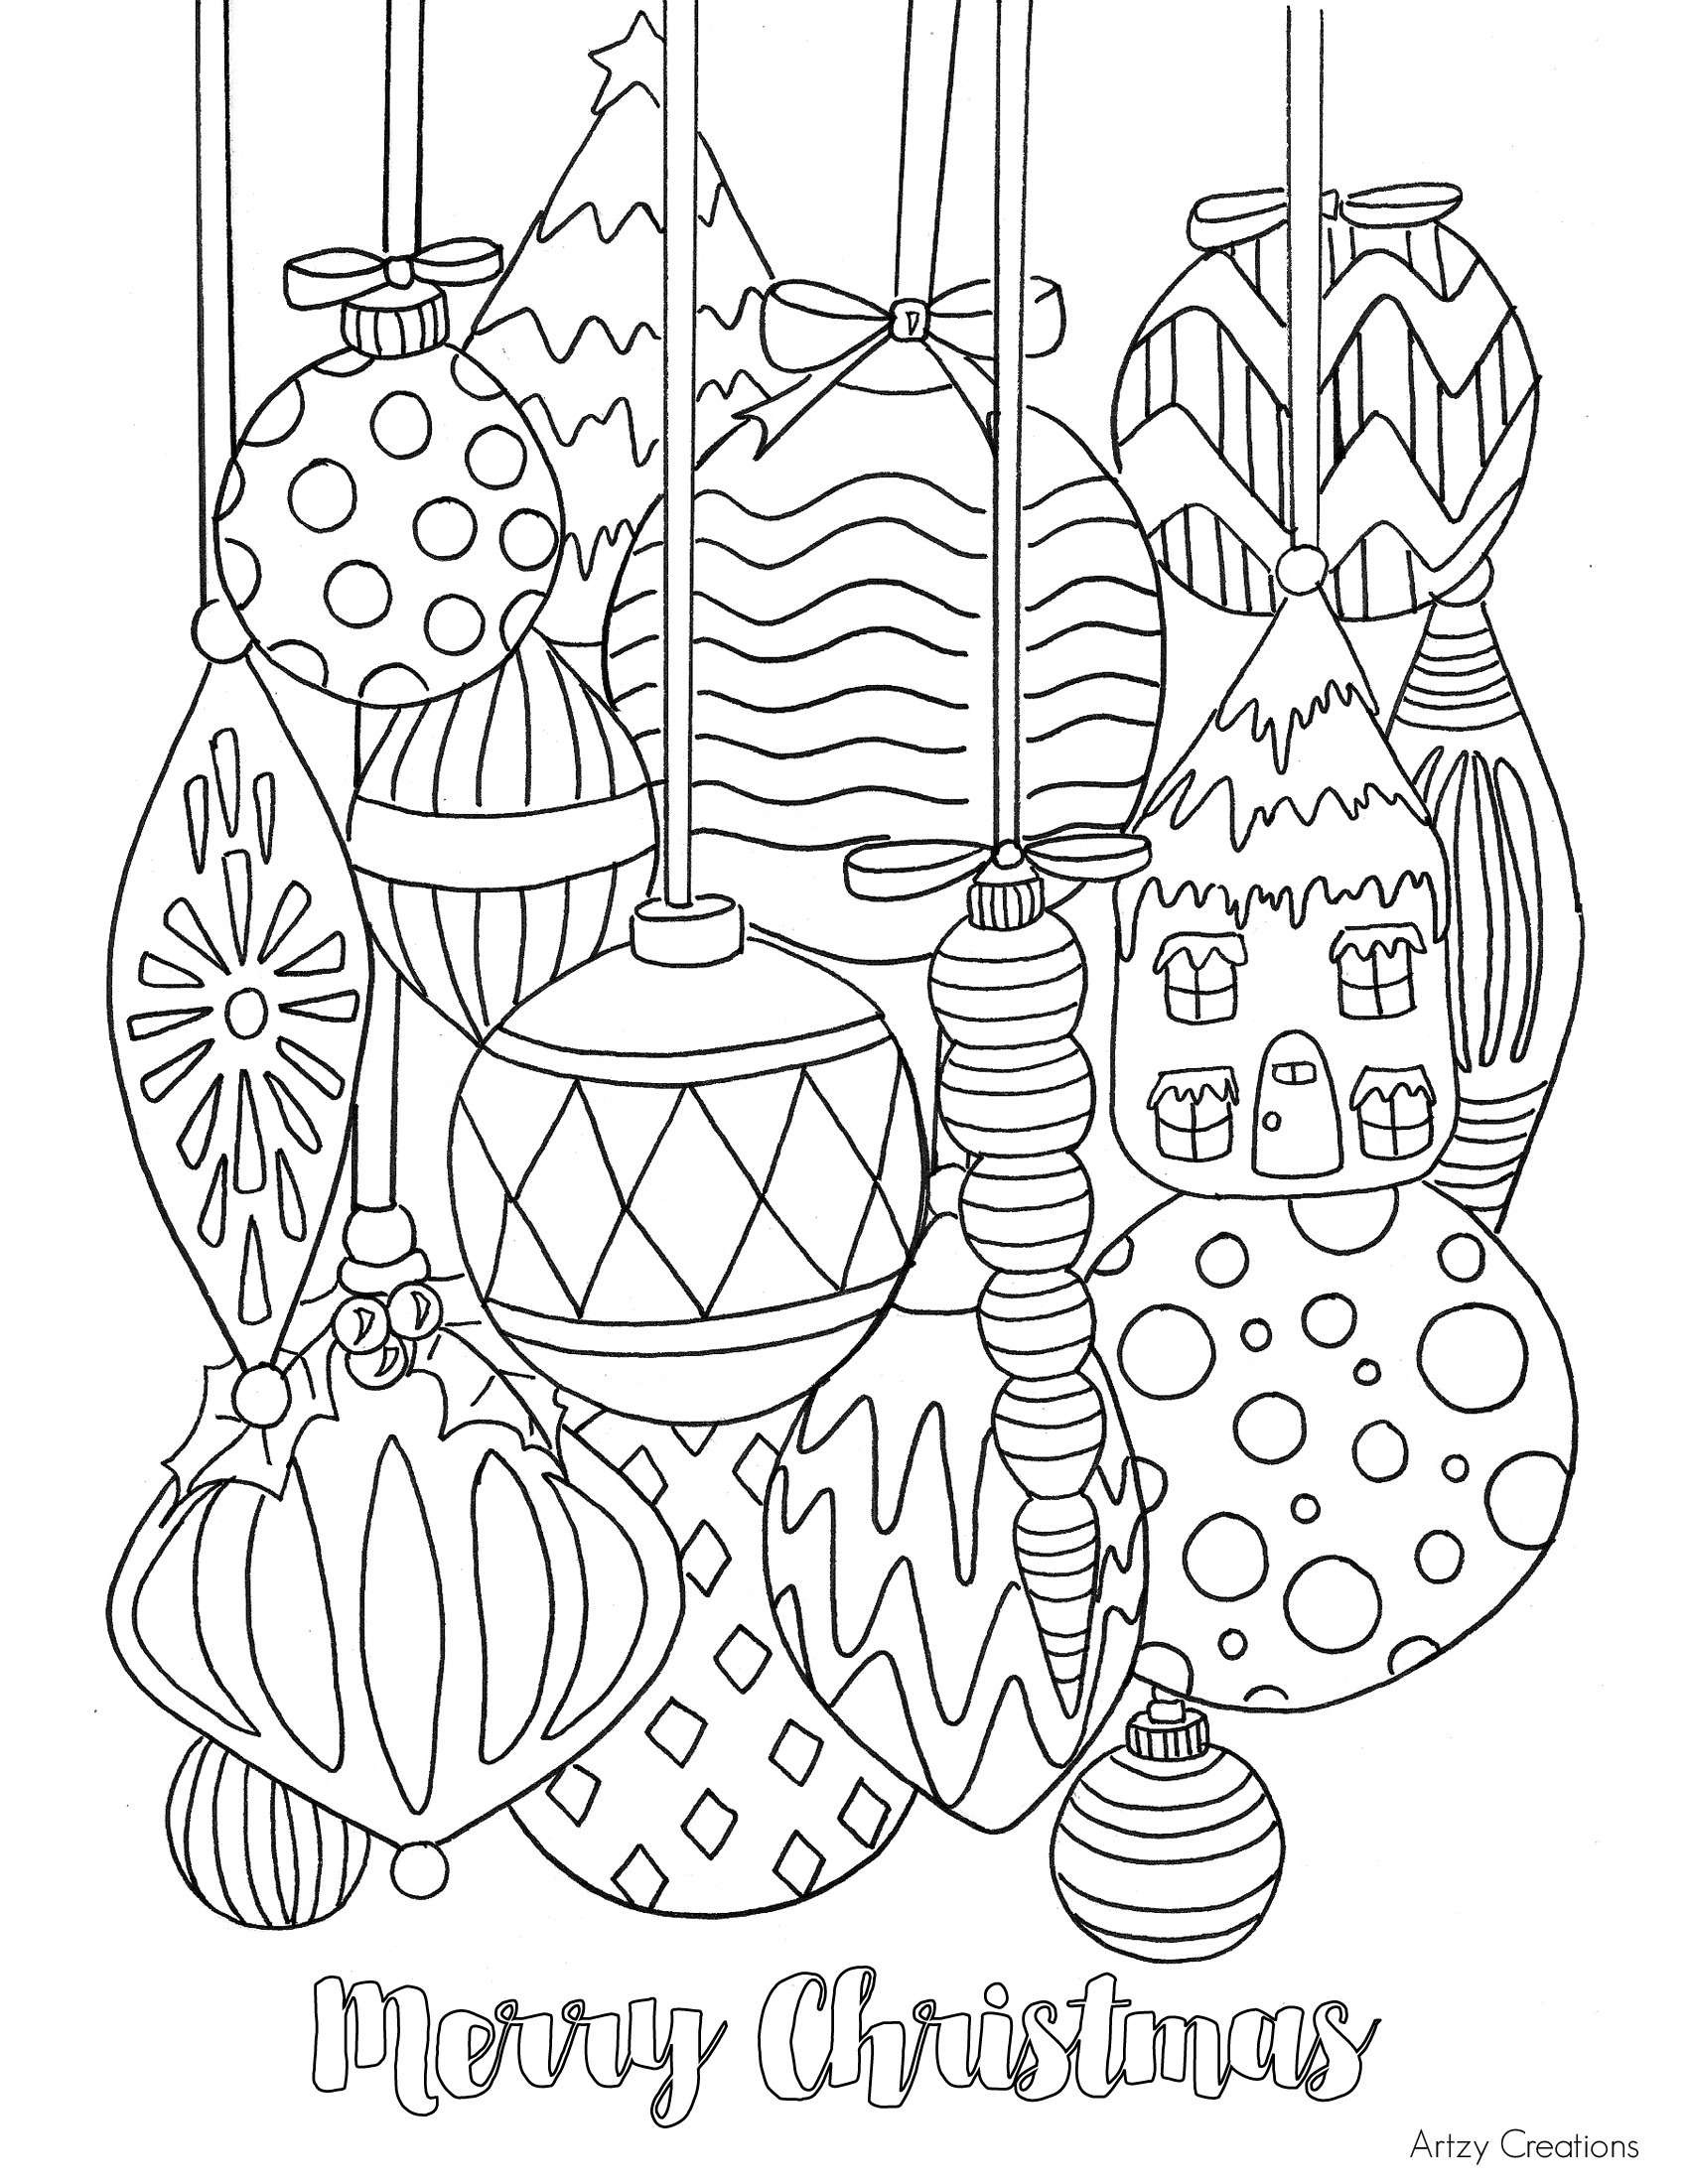 Cute Christmas Coloring Pages Cute Coloring Pages For Boyfriends New 47 Grinch Christmas Coloring